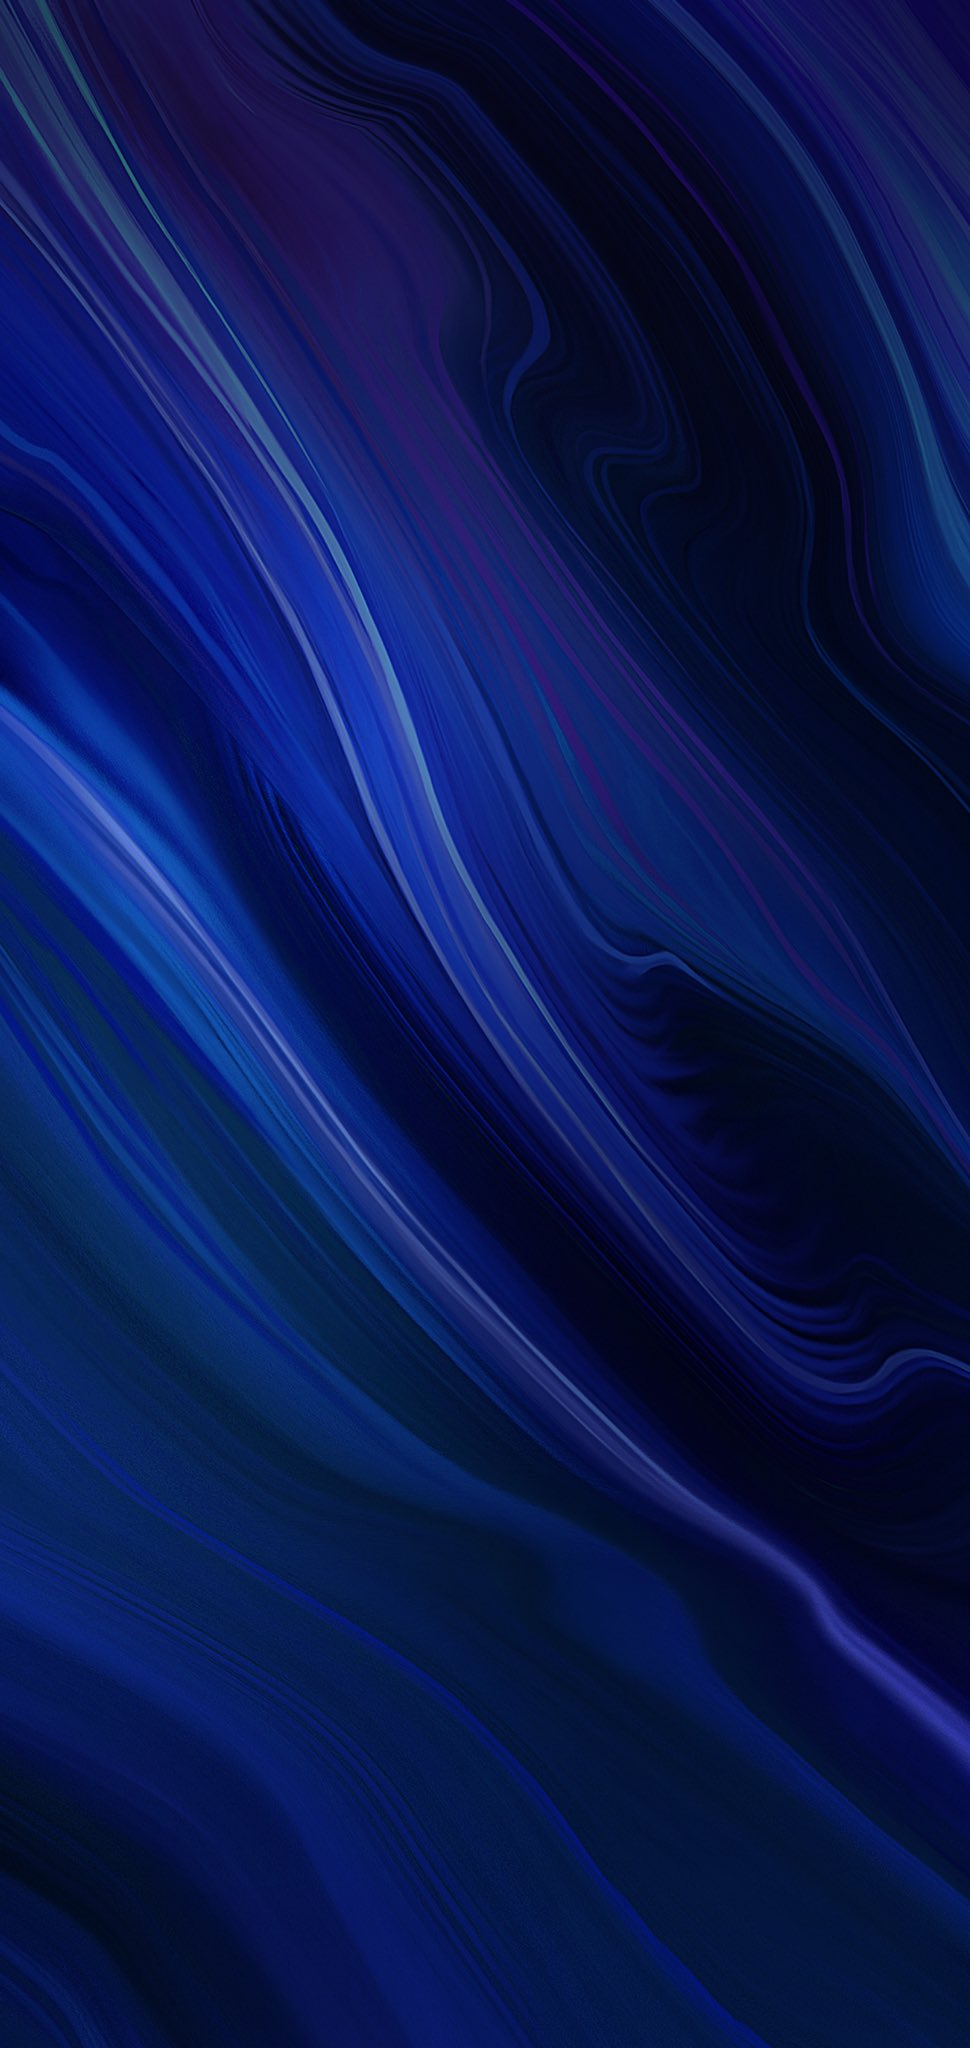 Pacific Blue iphone wallpaper idownloadblog smartechdaily abstract